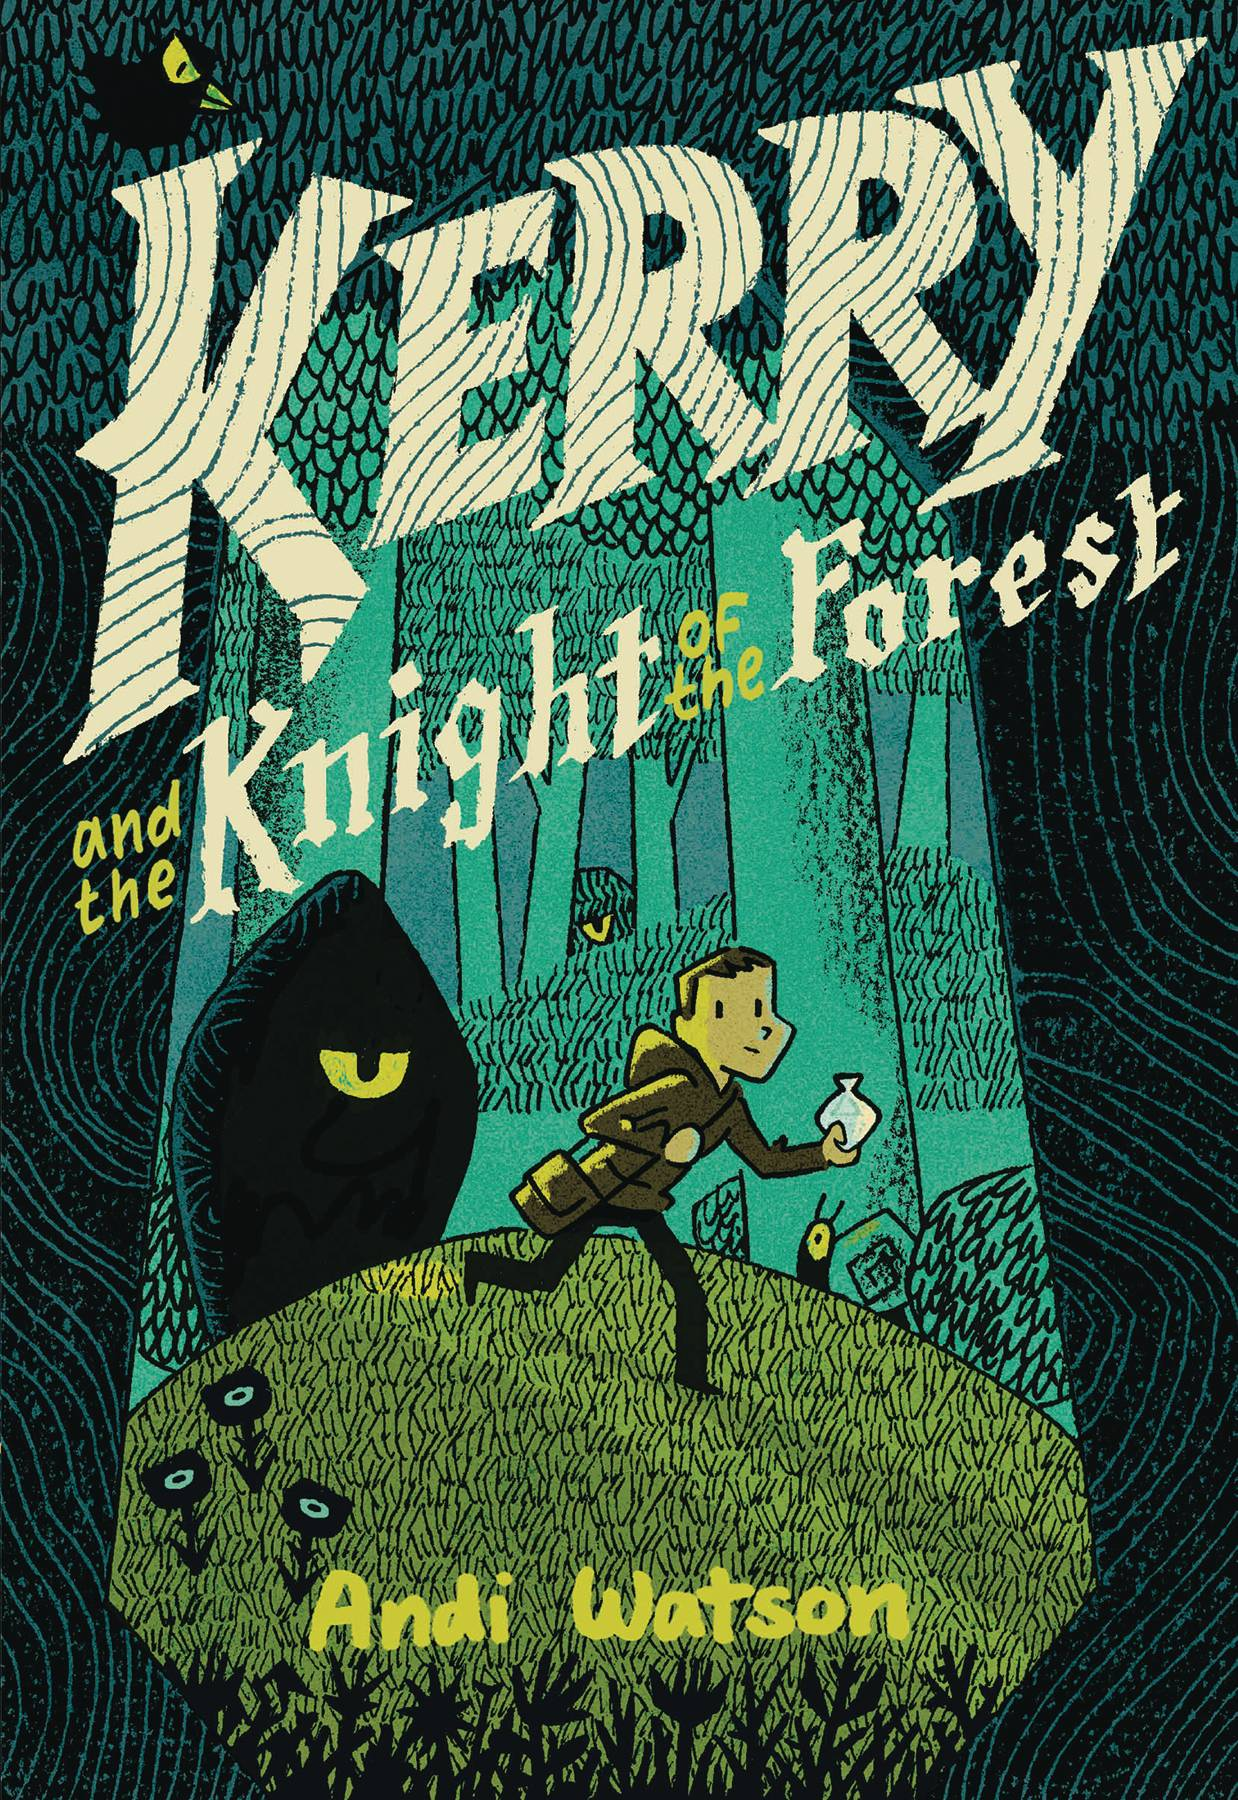 KERRY AND KNIGHT OF THE FOREST HC GN